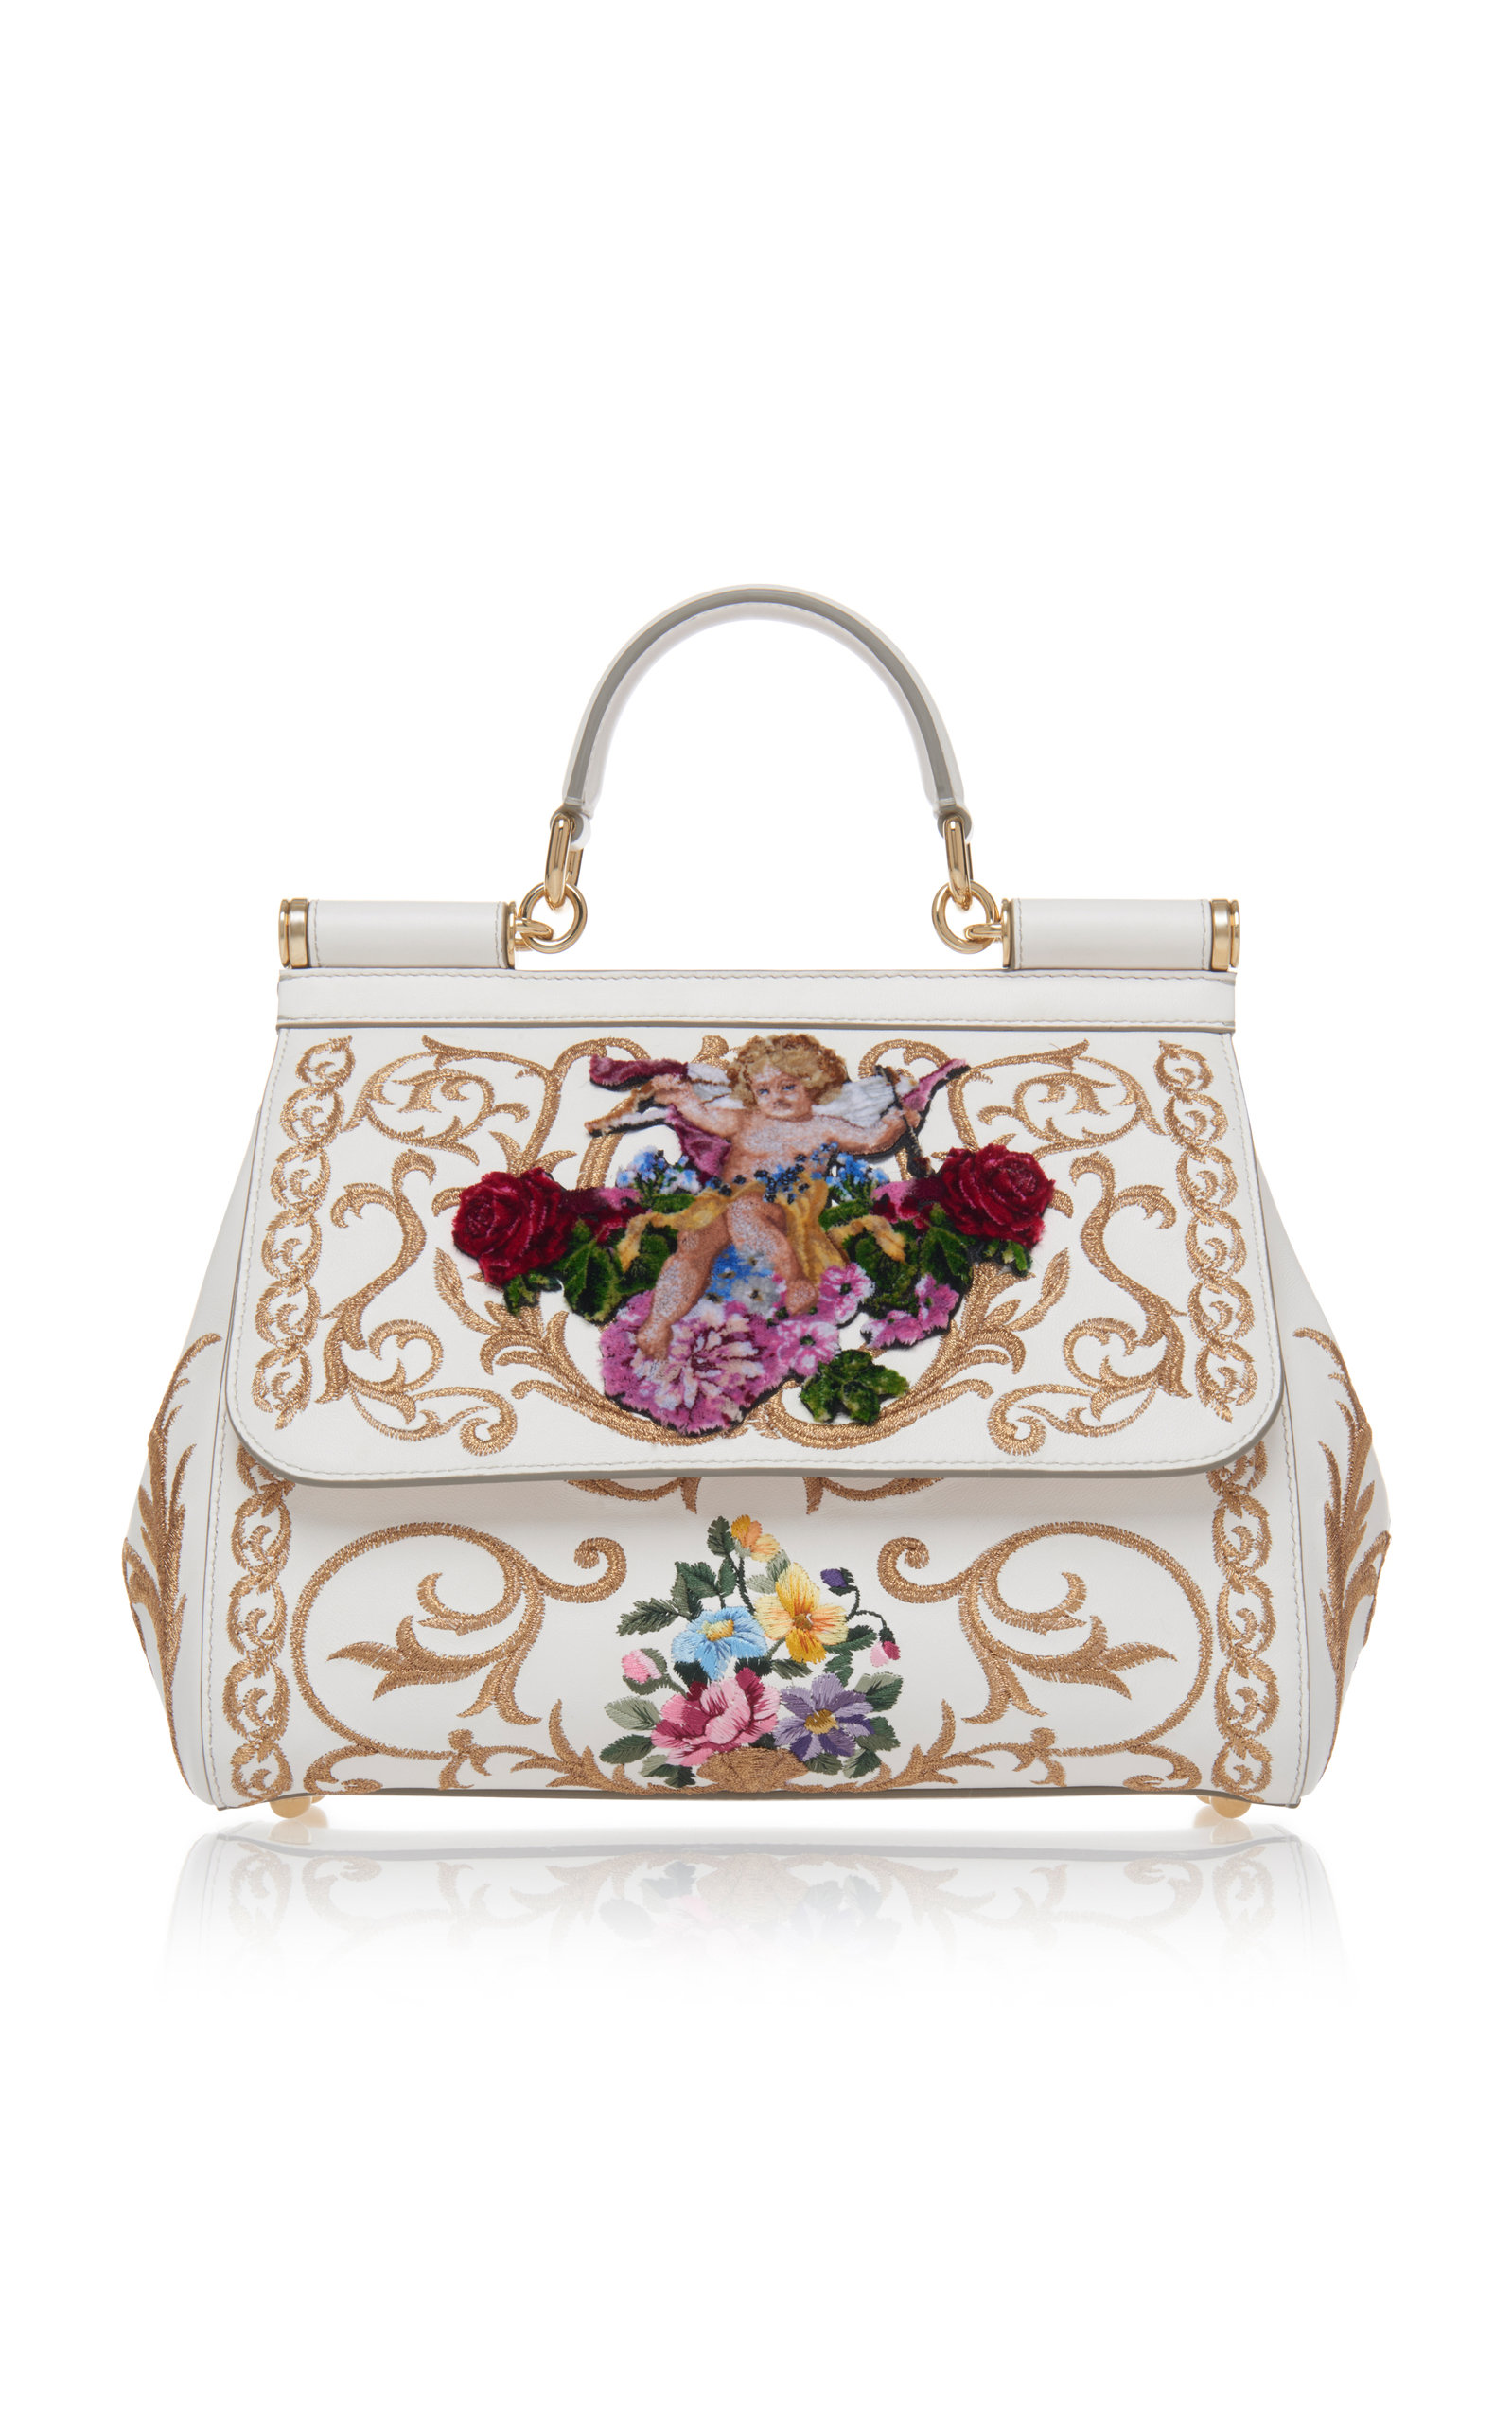 12a61b87d1 Embroidered Sicily Bag by Dolce   Gabbana